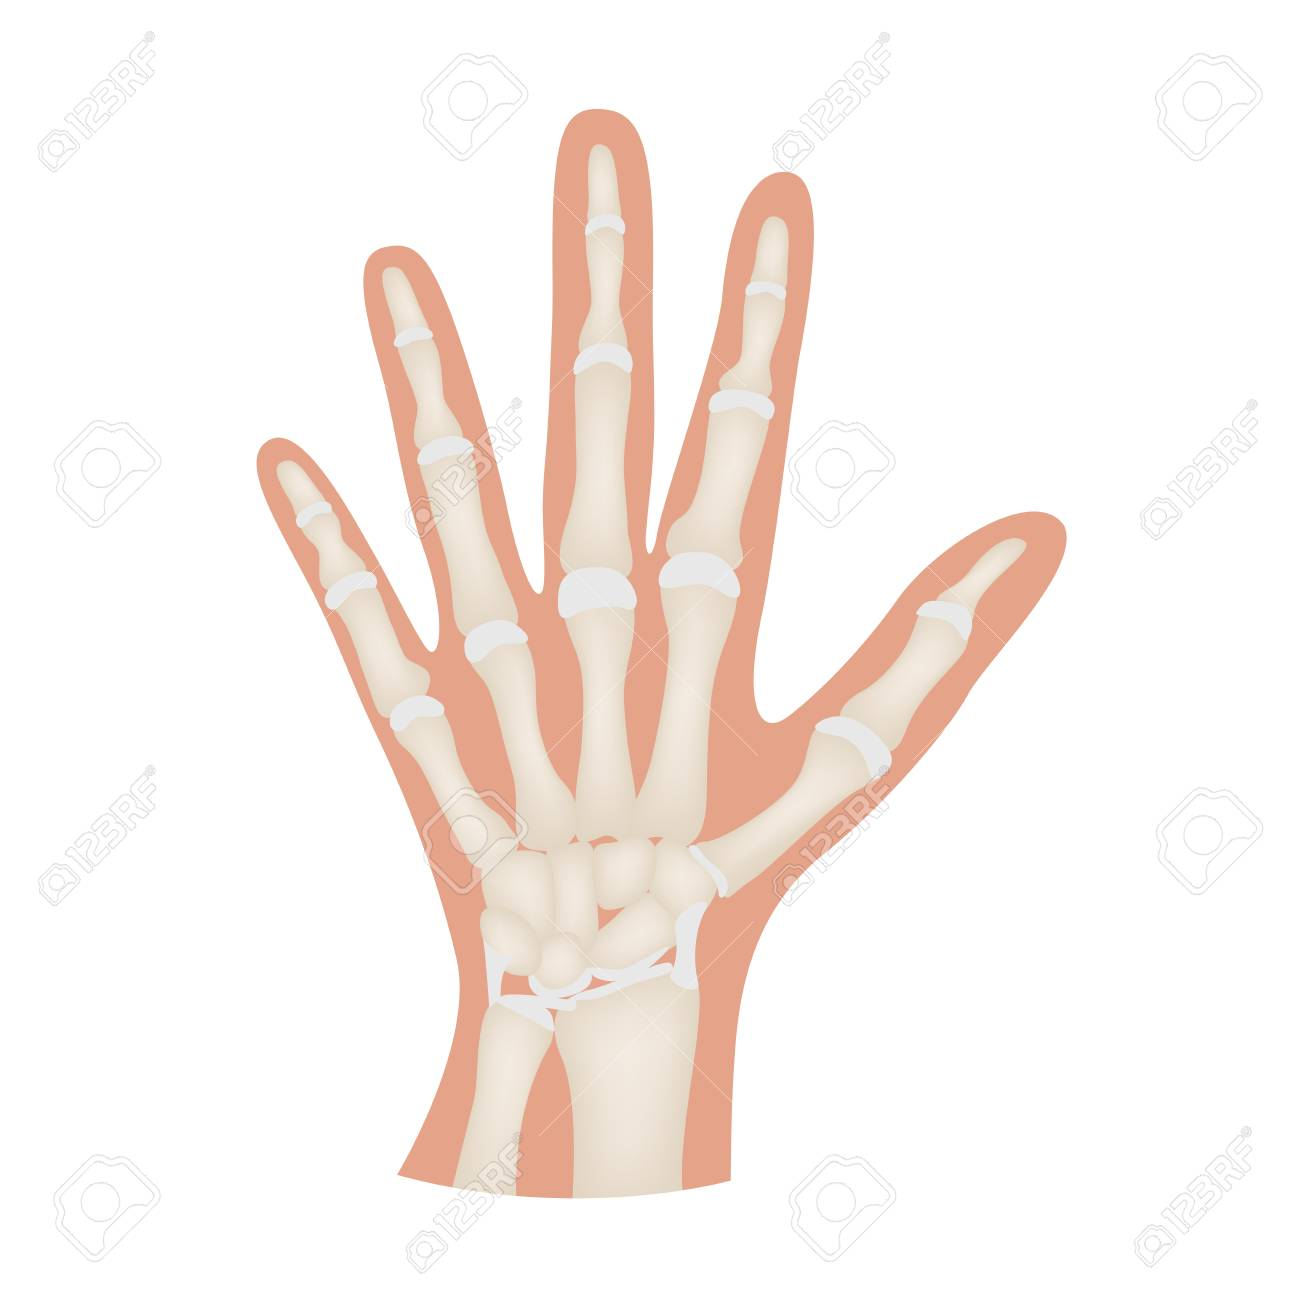 Hand Bone Anatomy Vector Royalty Free Cliparts, Vectors, And Stock ...